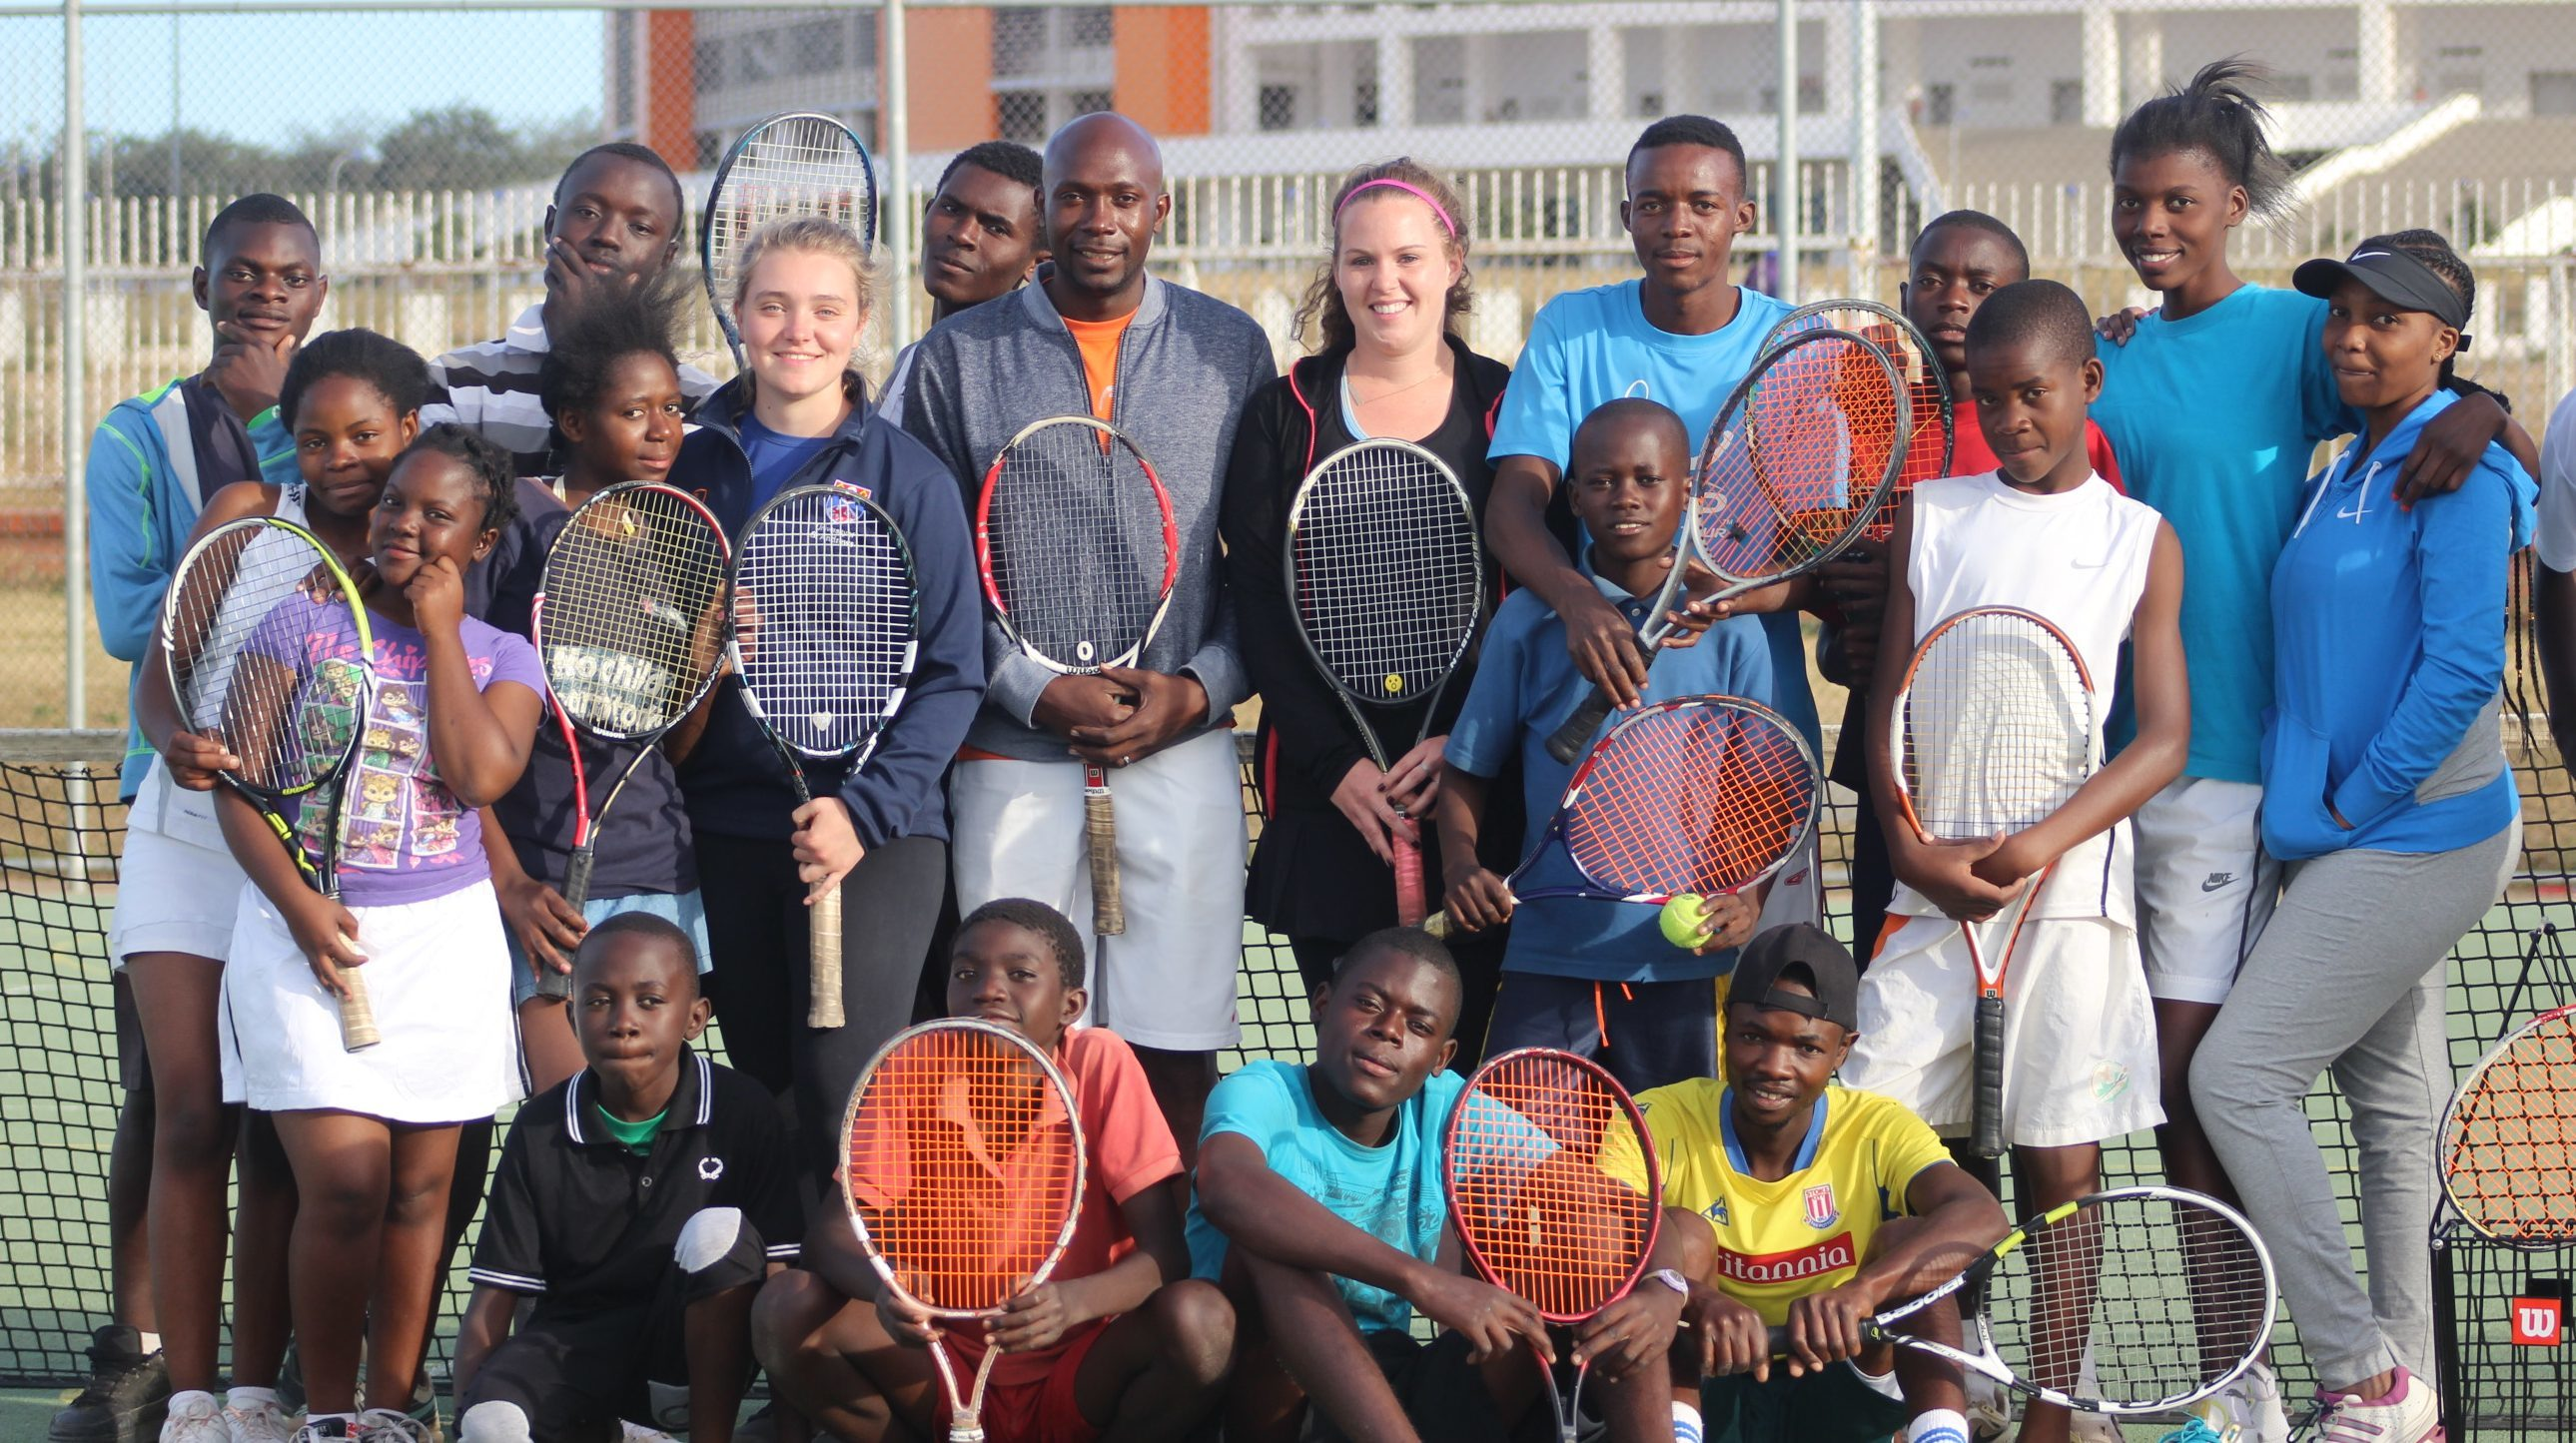 Students from St Andrews with the group in Zambia